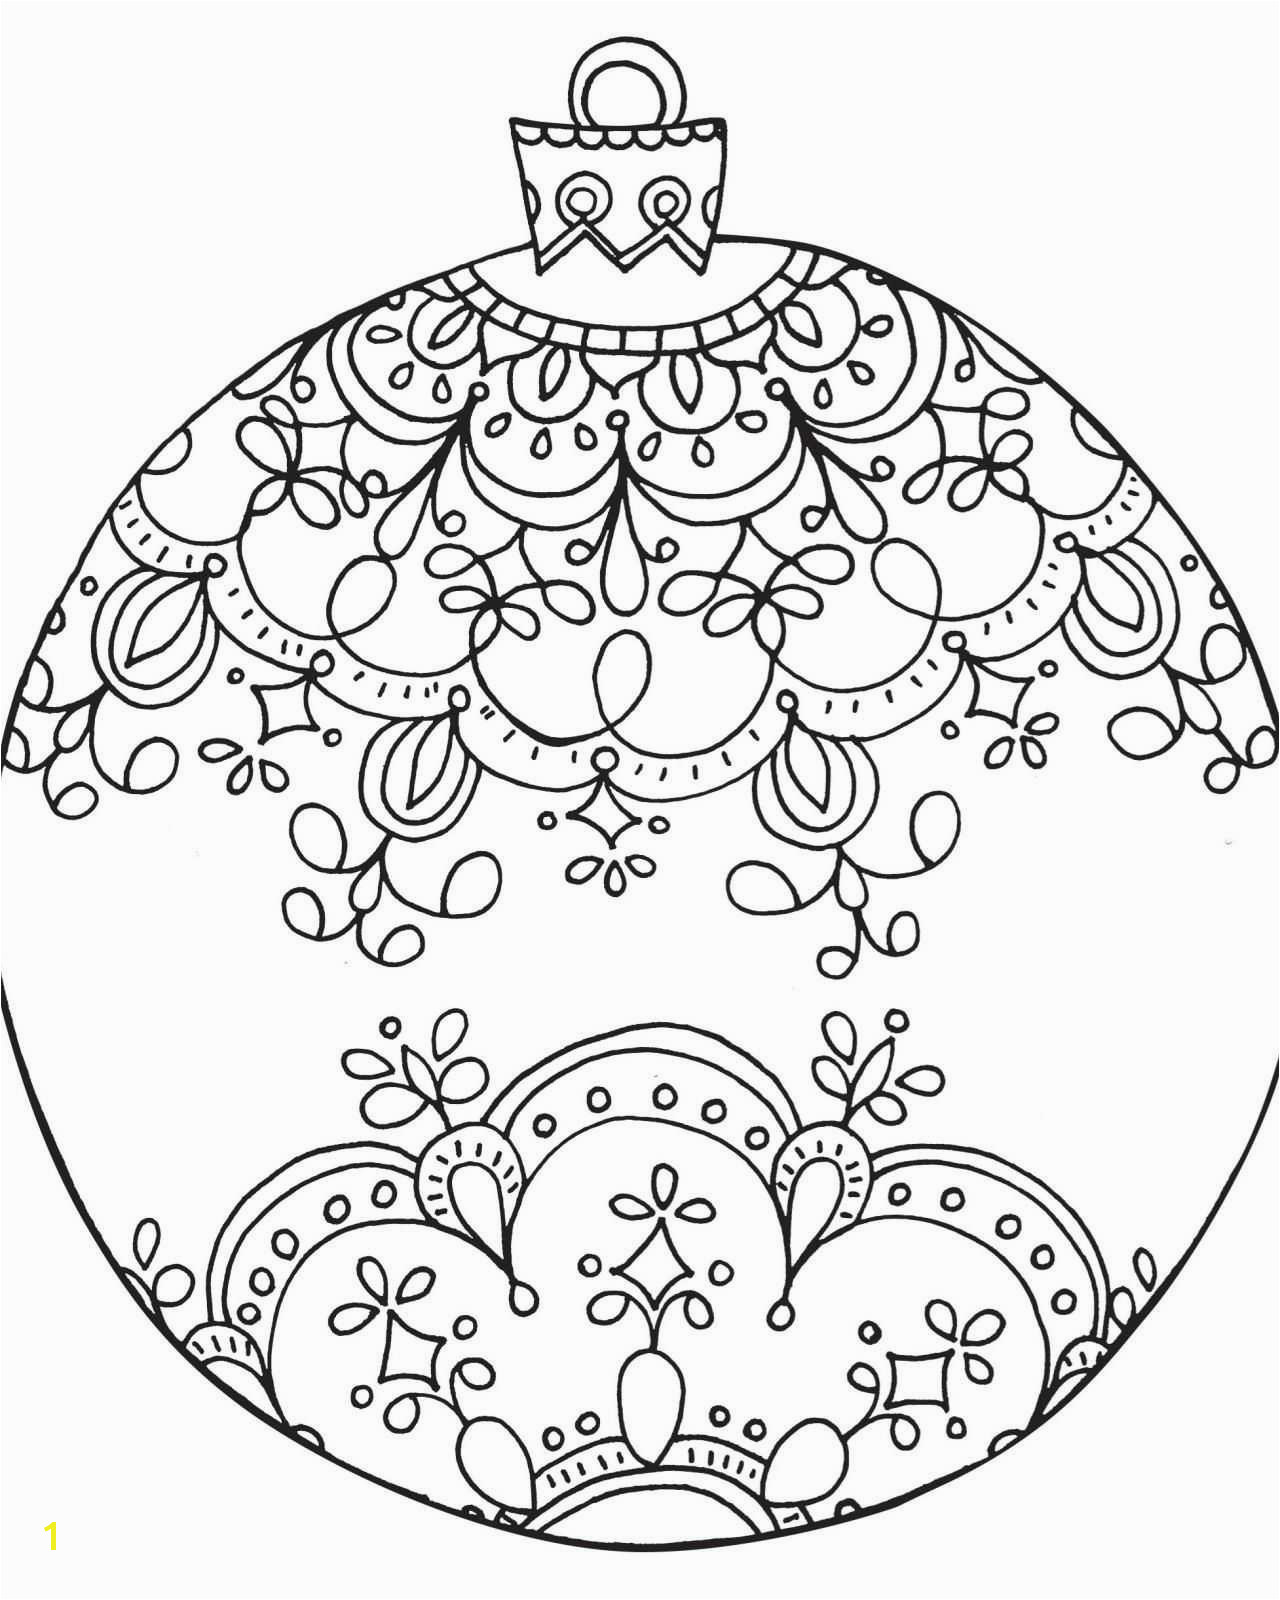 Famous Artists Coloring Pages New Baby Coloring Pages New Mediaart Coloring Books